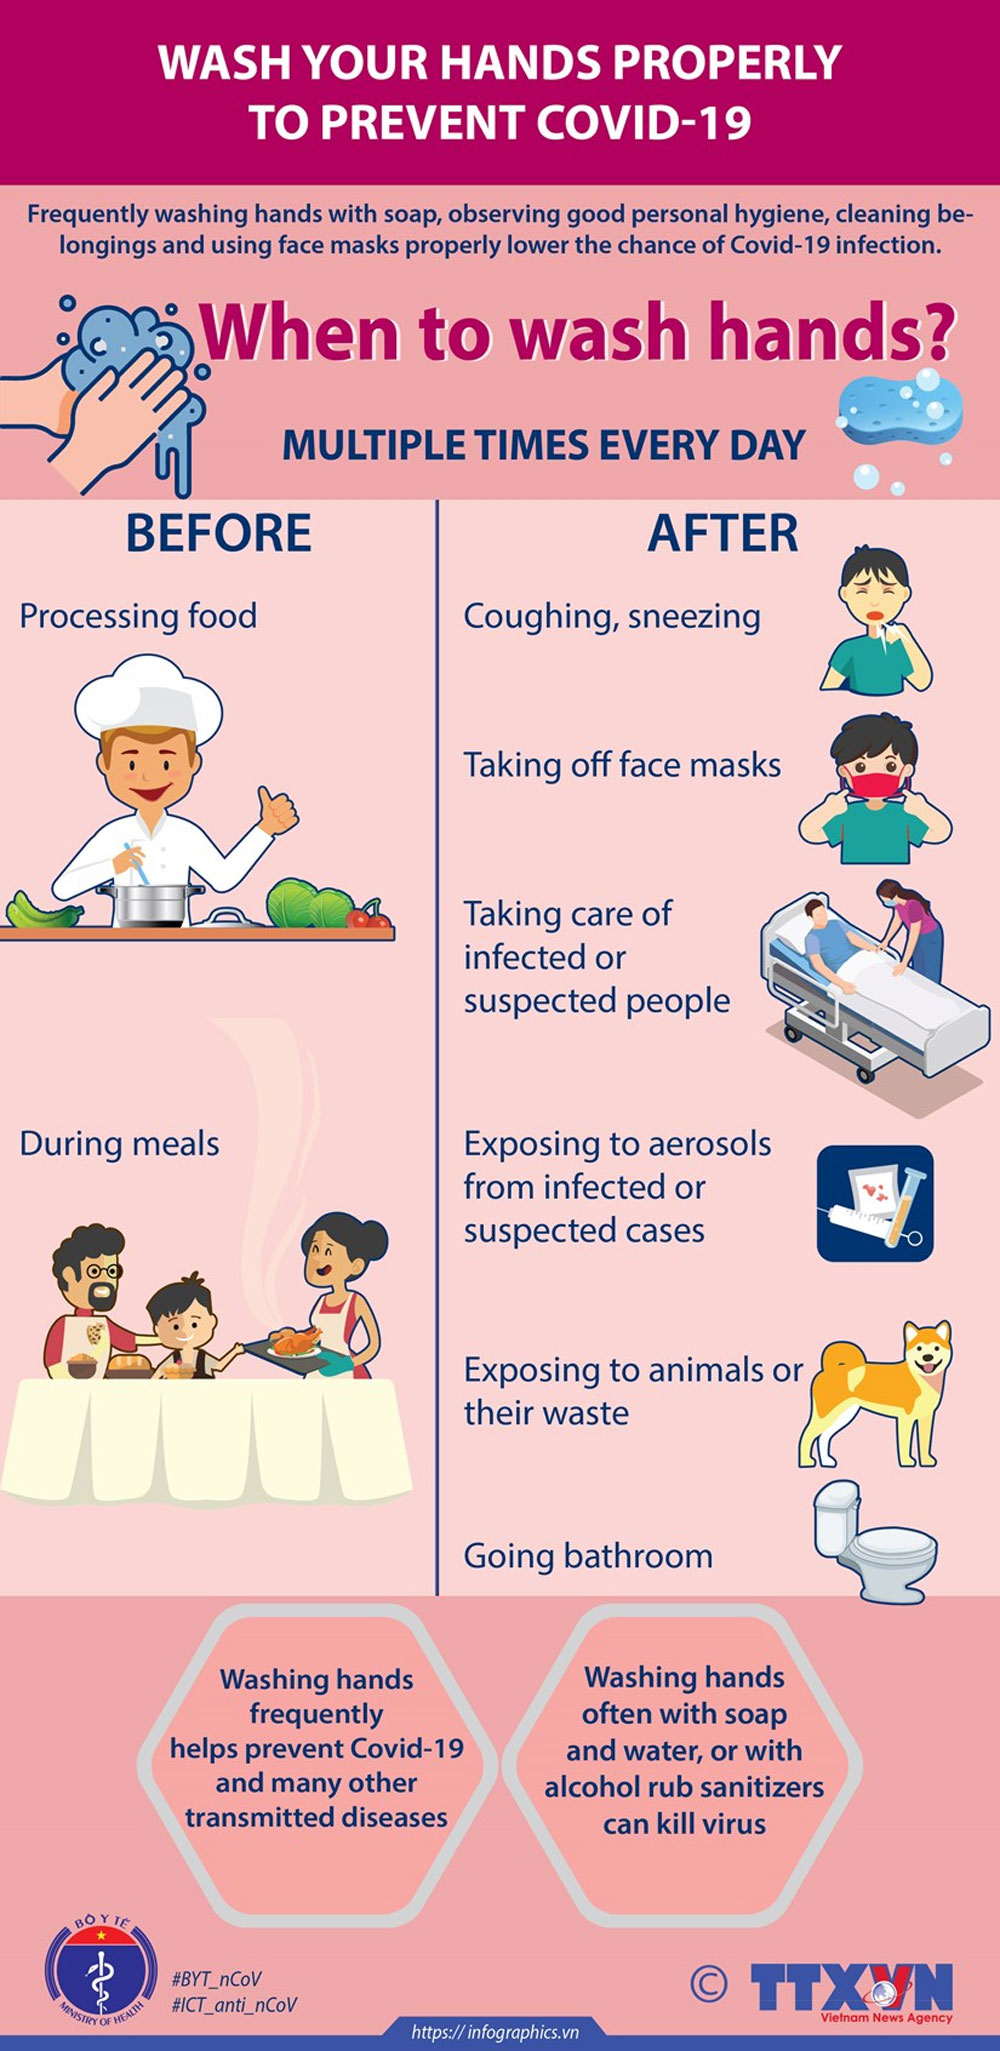 Wash your hands, properly washing, prevent Covid-19, good personal hygiene, face masks